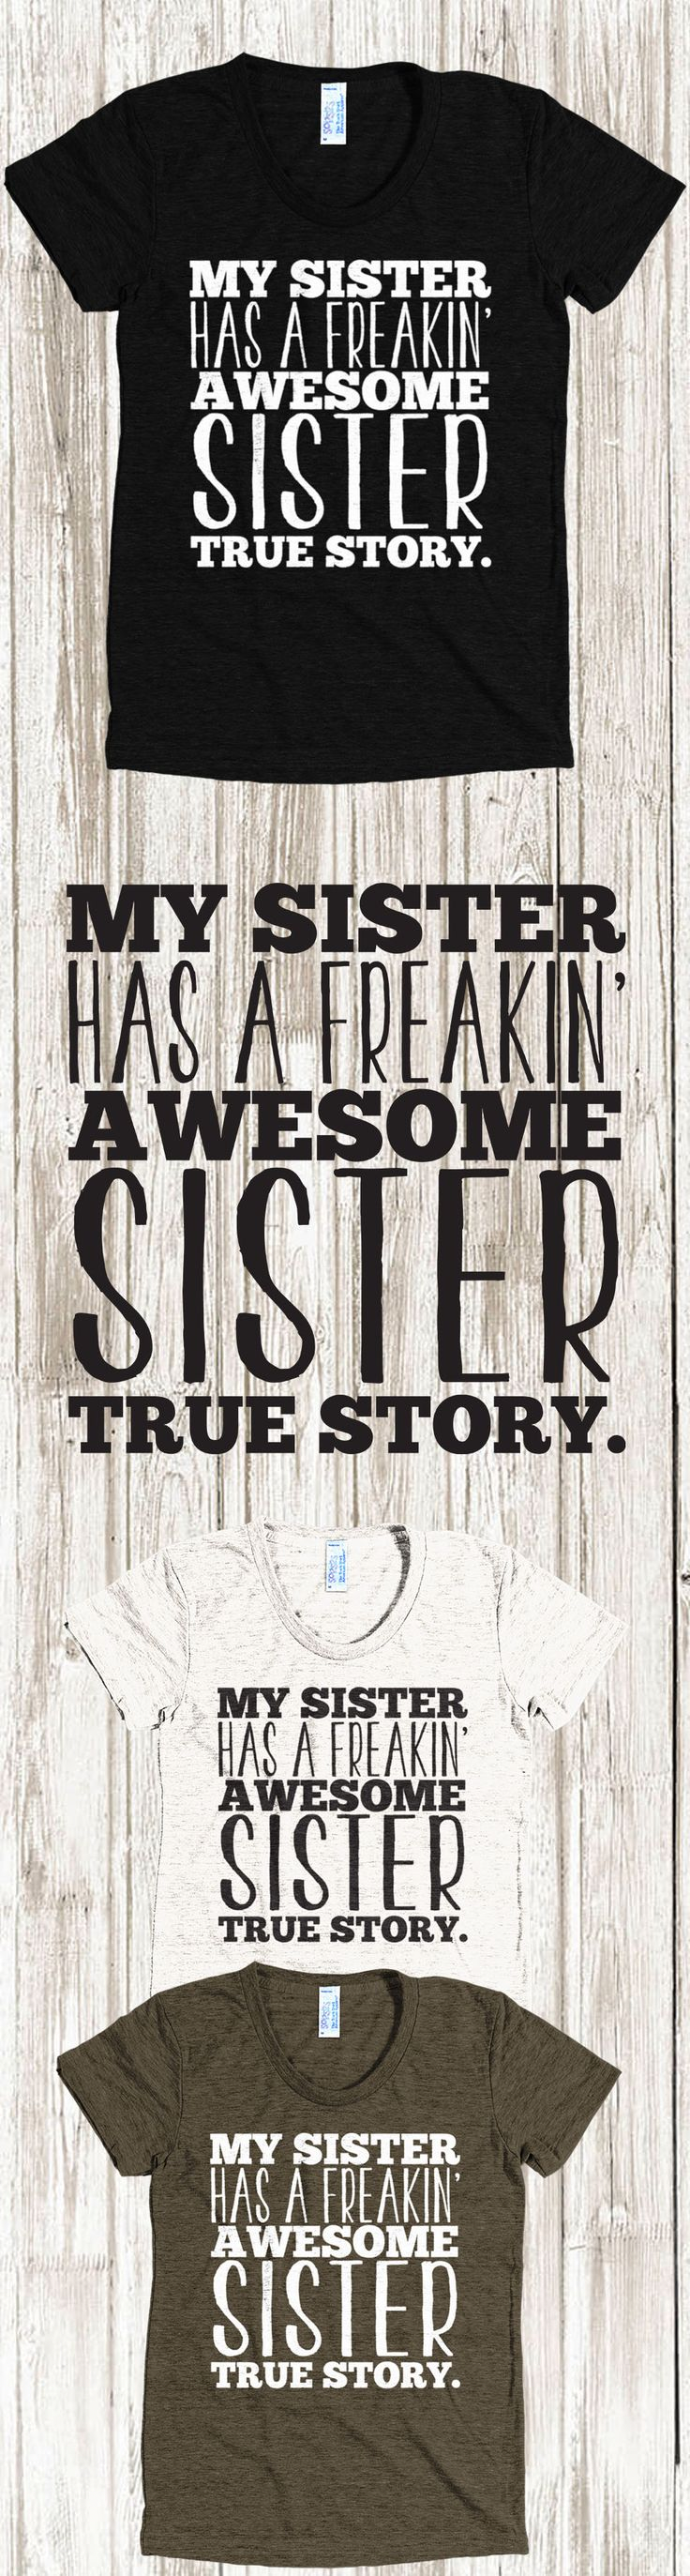 Did you know National Sister's Day is Aug 7th?Check out this awesome My Sister Has an Awesome Sister t-shirt you will not find anywhere else. Not sold in stores and Buy 2 or more, save on shipping! Grab yours or gift it to a friend, you will both love it